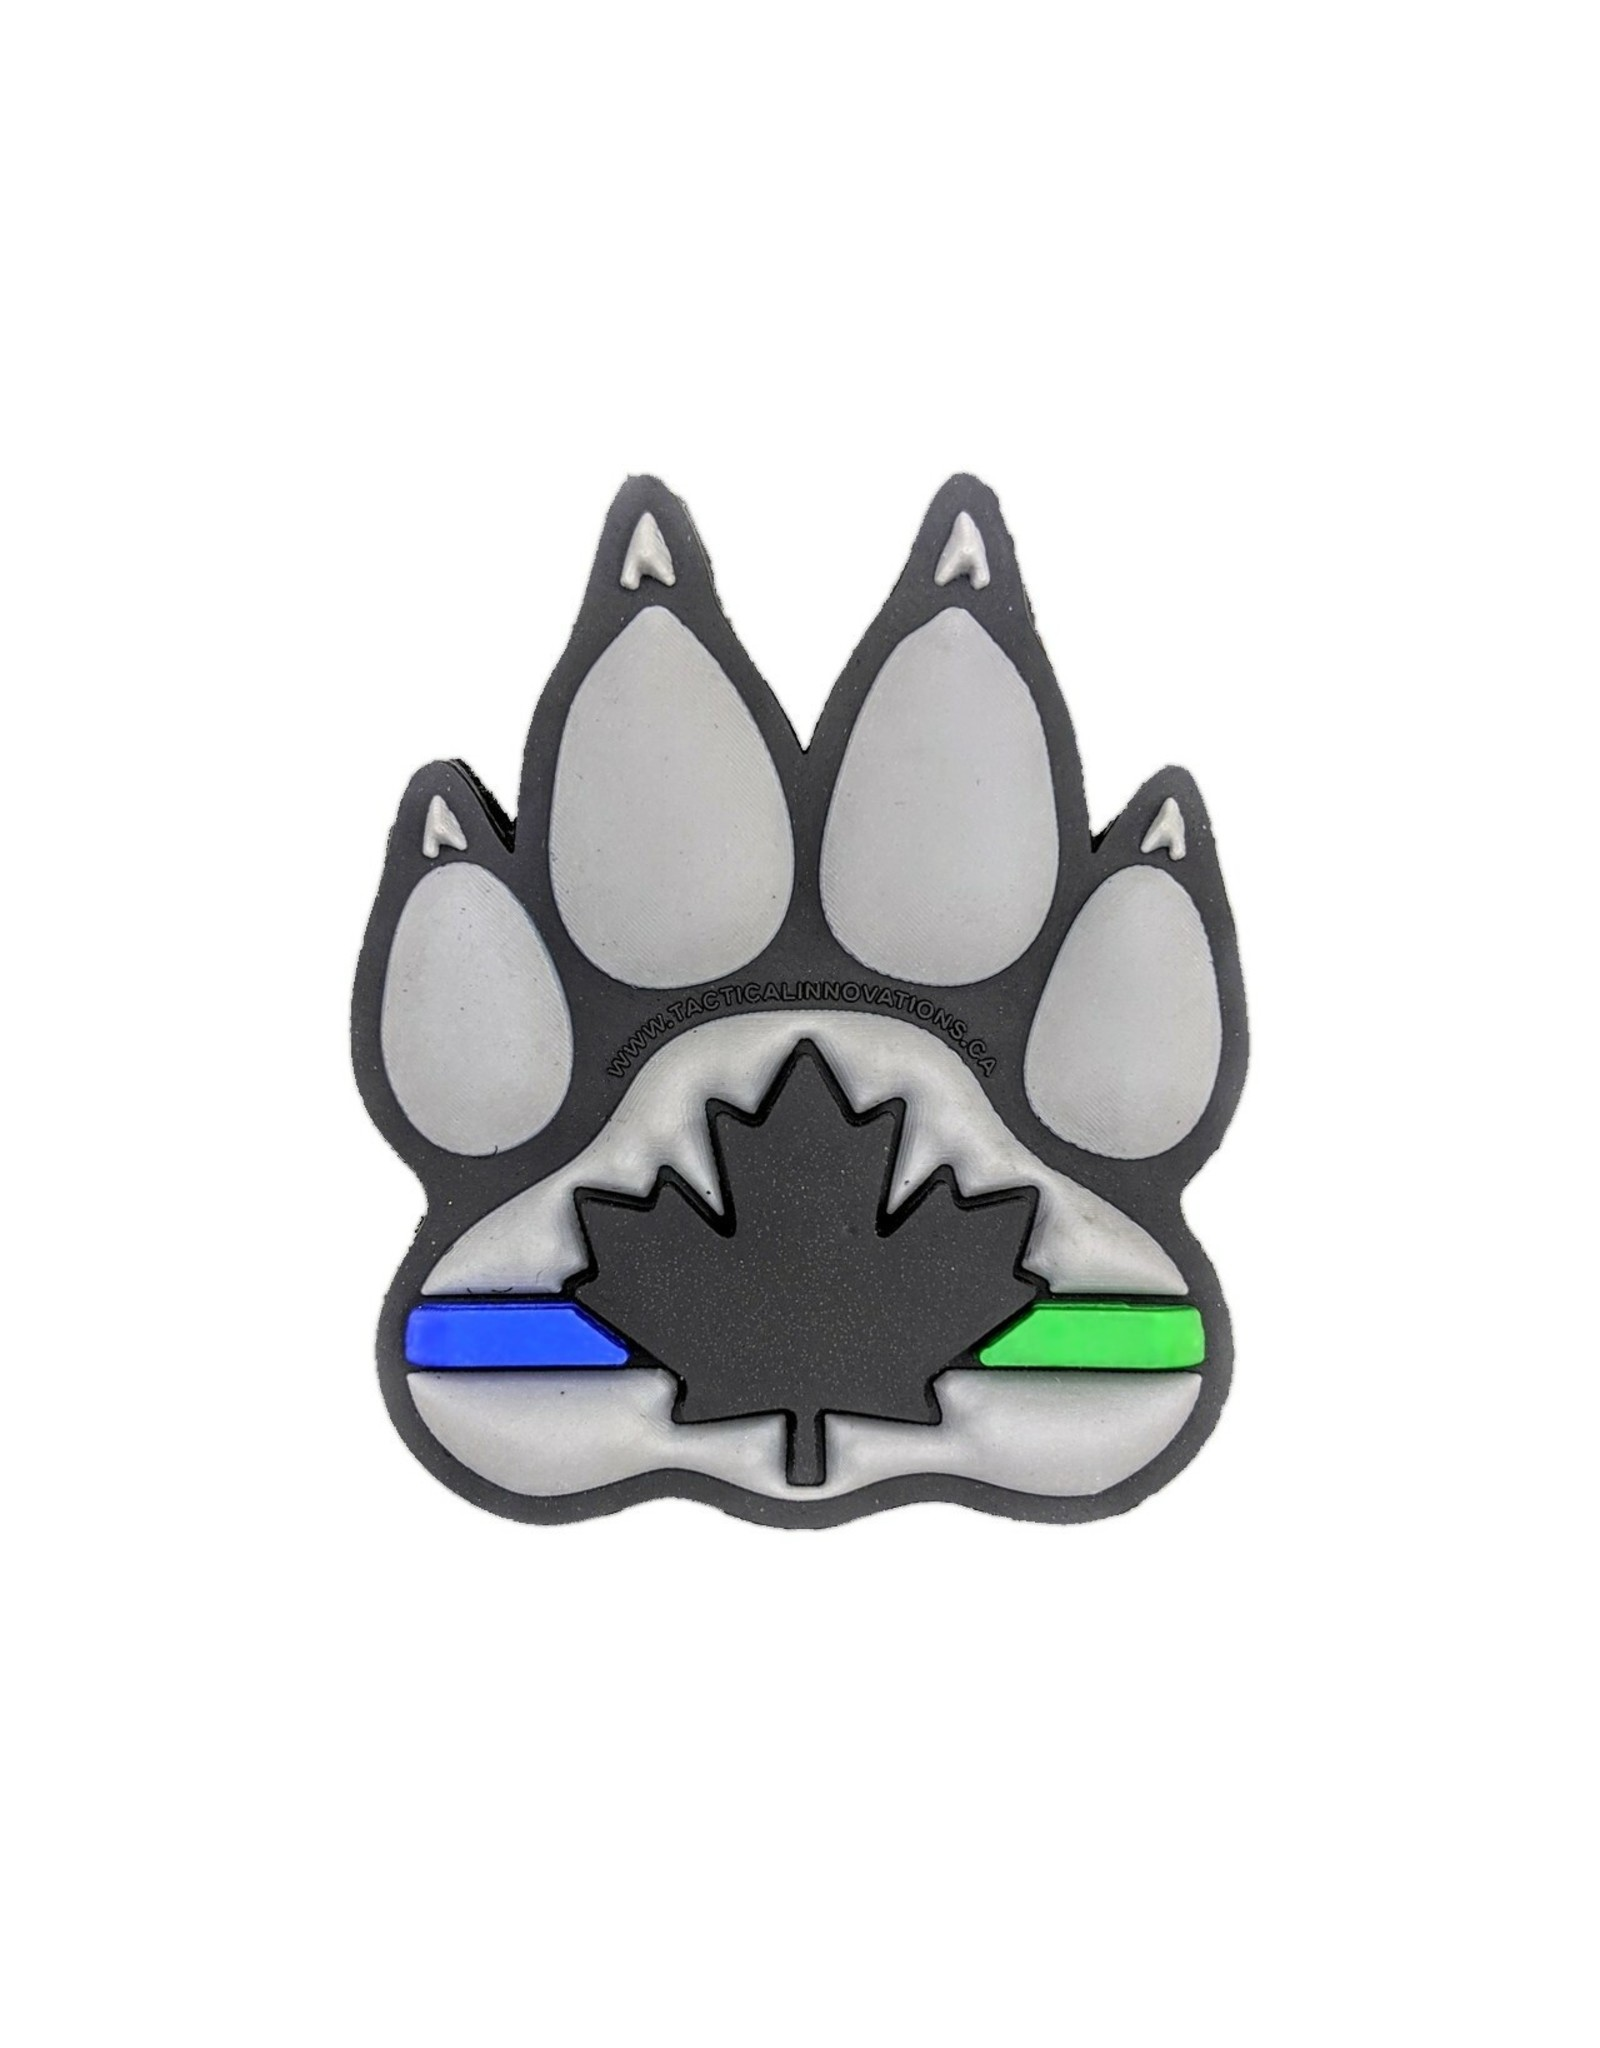 TIC Patch - K9 (S) THIN BLUE LINE/GREEN LINE GREY